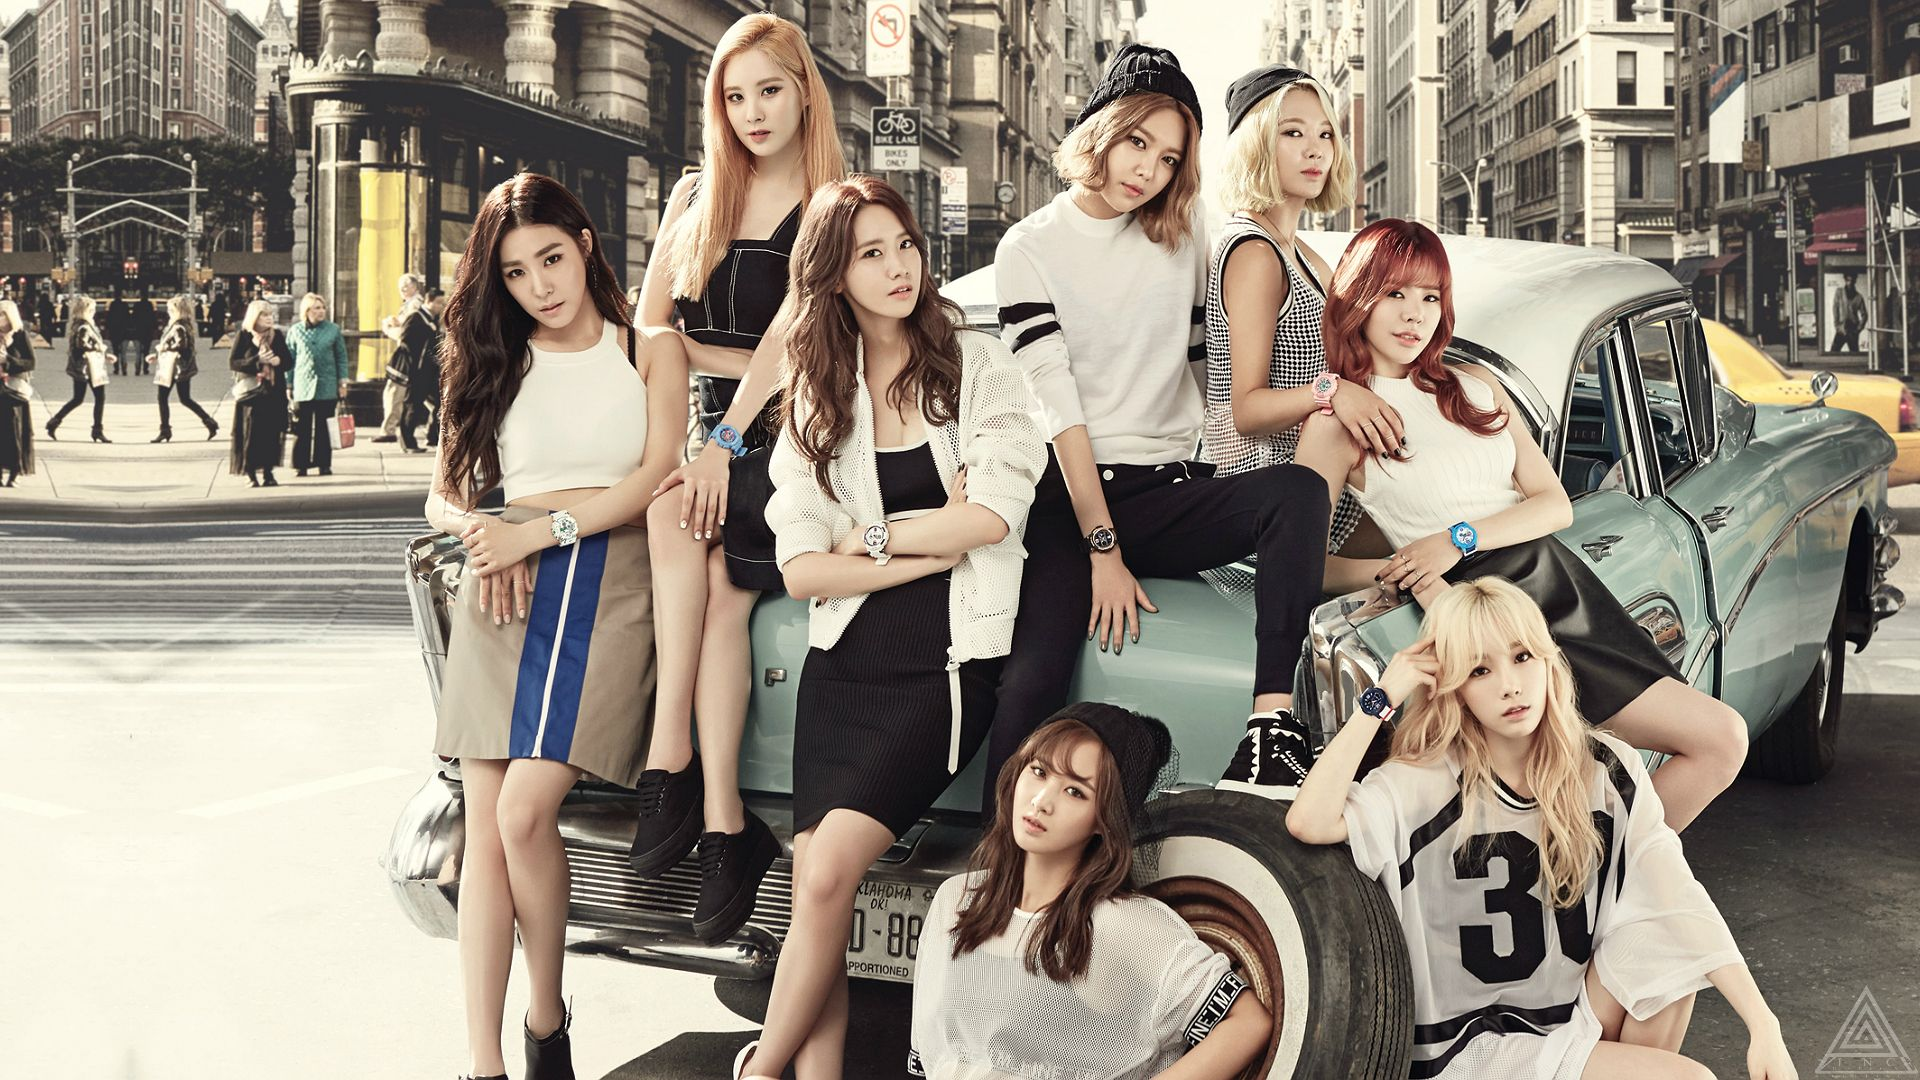 Snsd Hd Wallpapers Backgrounds Wallpaper 1920x1080